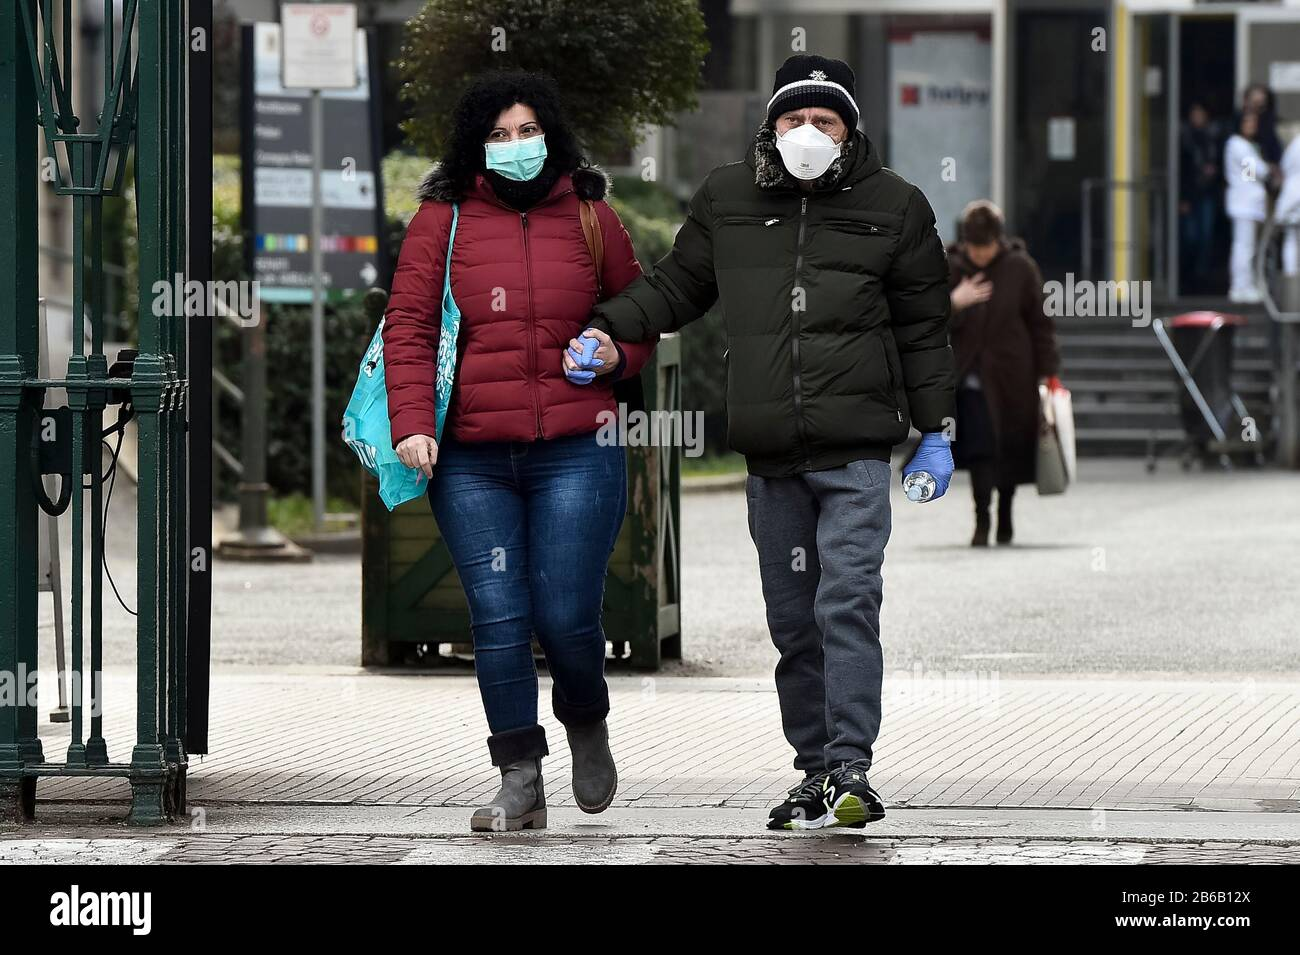 Turin, Italy. 09th Mar, 2020. TURIN, ITALY - March 09, 2020: Two people wearing protective masks and holding hands leave Molinette hospital. The Italian government imposed a virtual lockdown on the north of the country as part of measures to stop the spread of the coronavirus COVID-19 outbreak in Italy. (Photo by Nicolò Campo/Sipa USA) Credit: Sipa USA/Alamy Live News Stock Photo